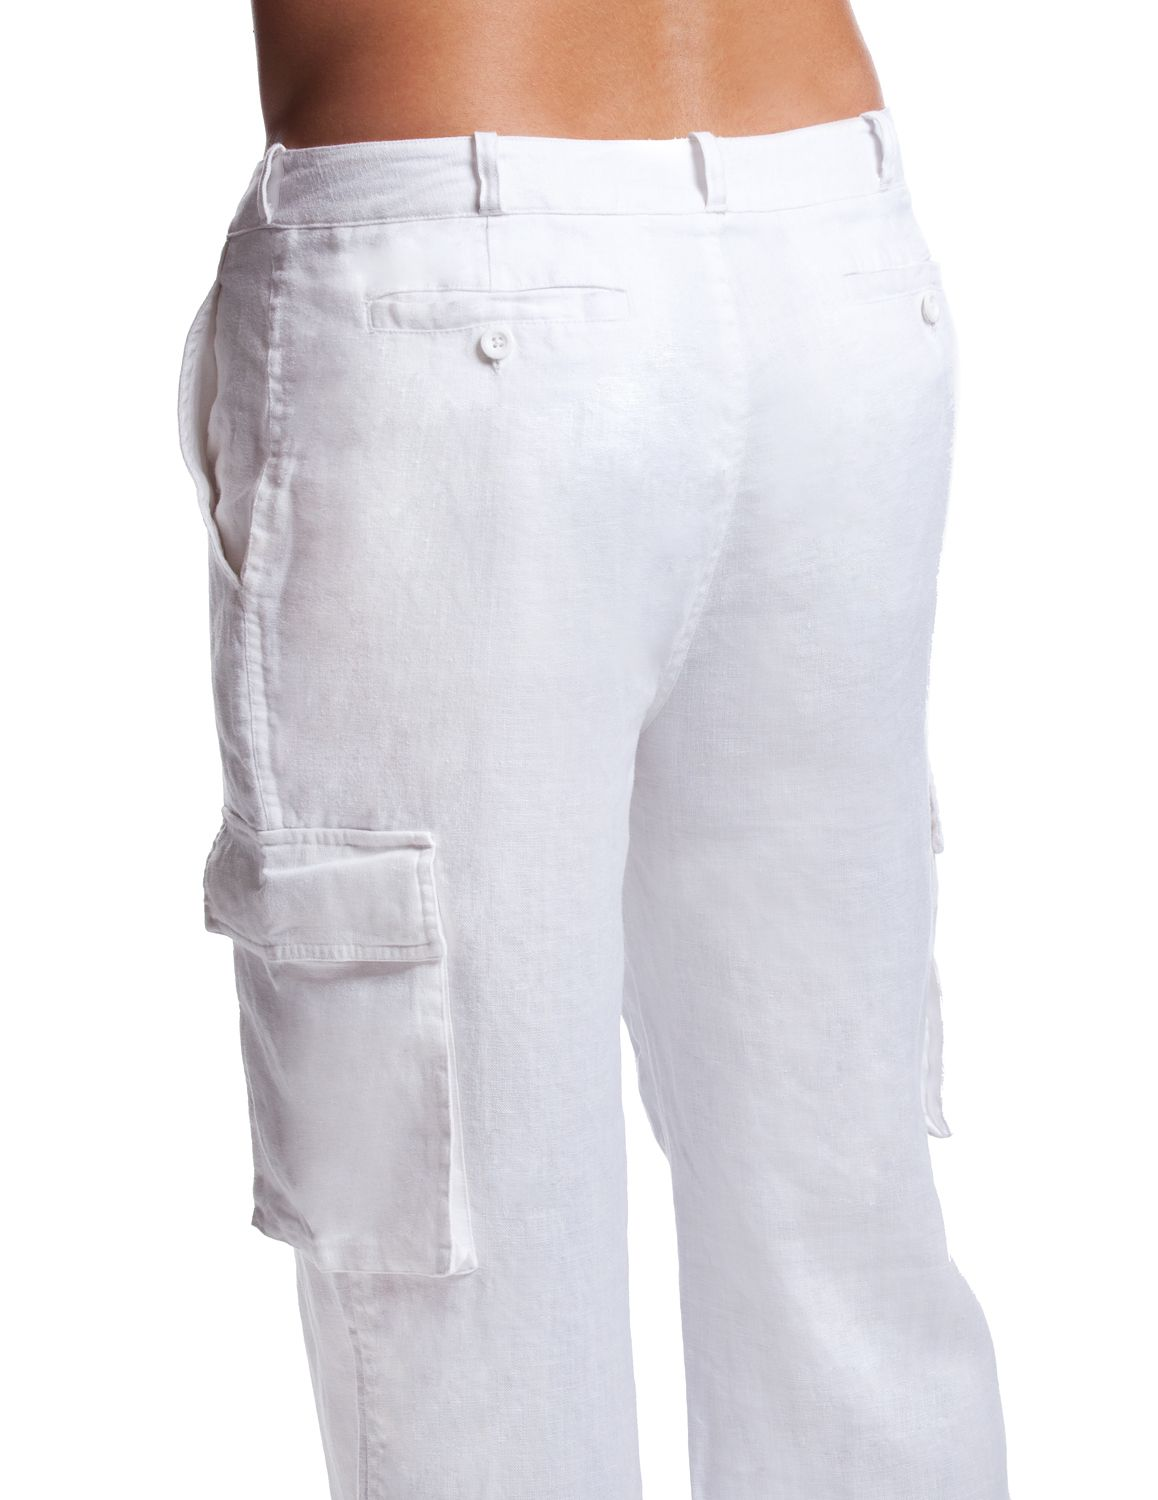 Find mens white cargo pants at ShopStyle. Shop the latest collection of mens white cargo pants from the most popular stores - all in one place.